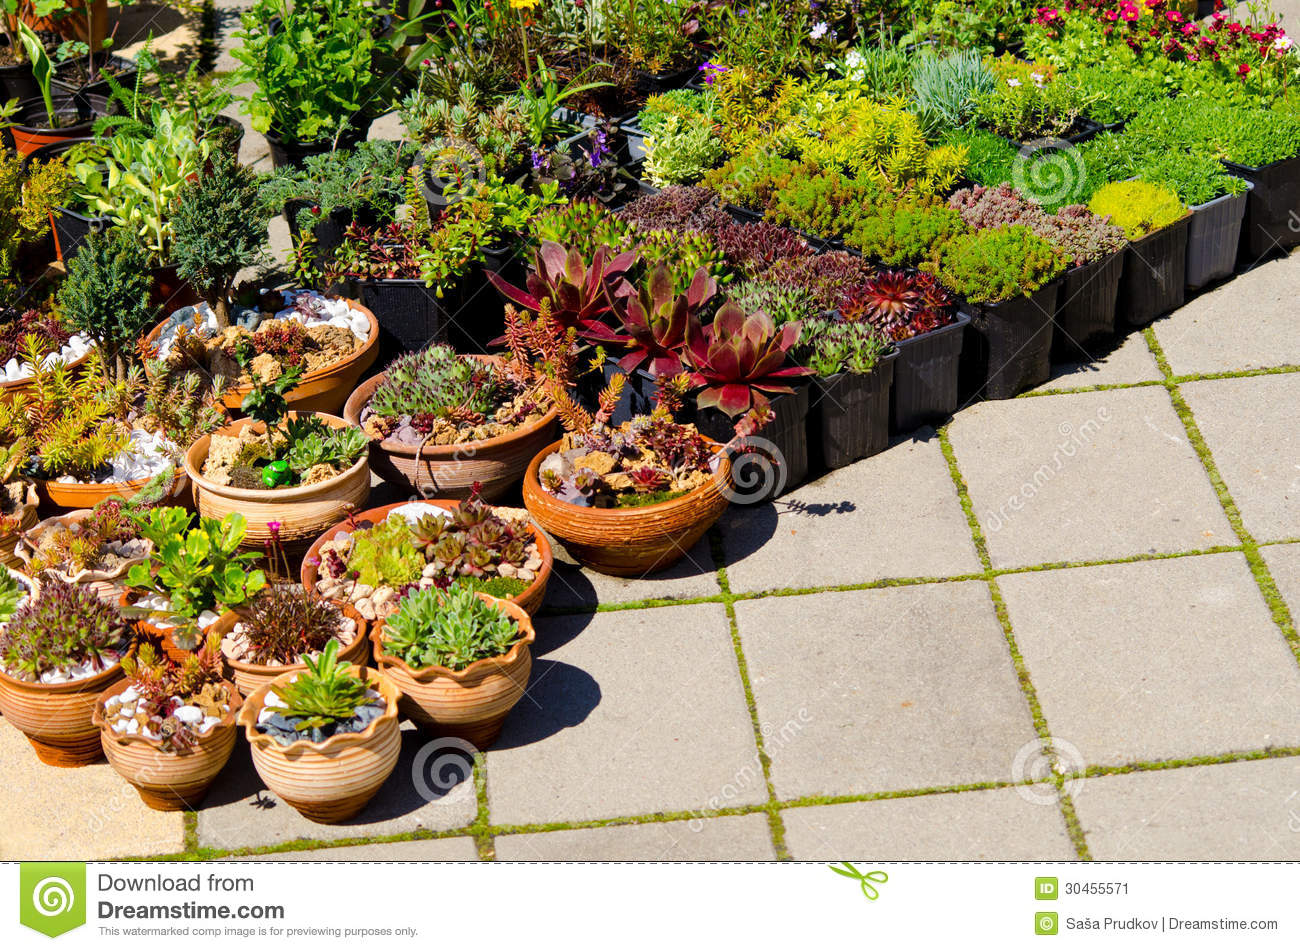 Home Plants For Sale Stock Image Image 30455571